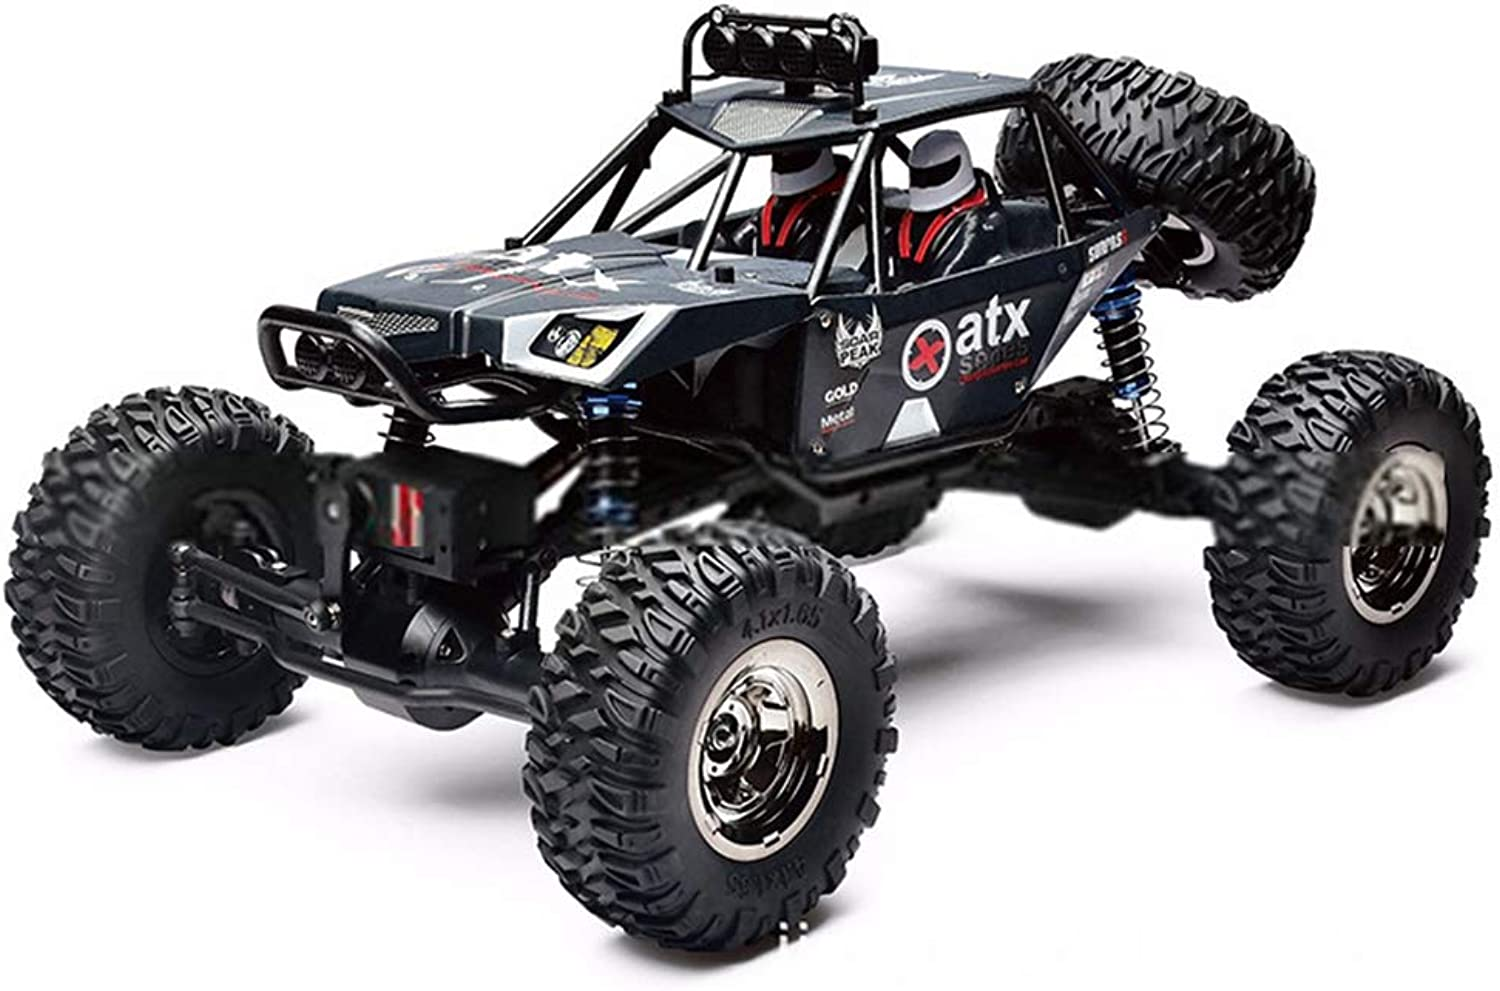 RC Car, 1 10 4WD Electric Remote Control Toy Cars Radio Controlled 4x4 Drive Off-Road Toys for Boys Kids